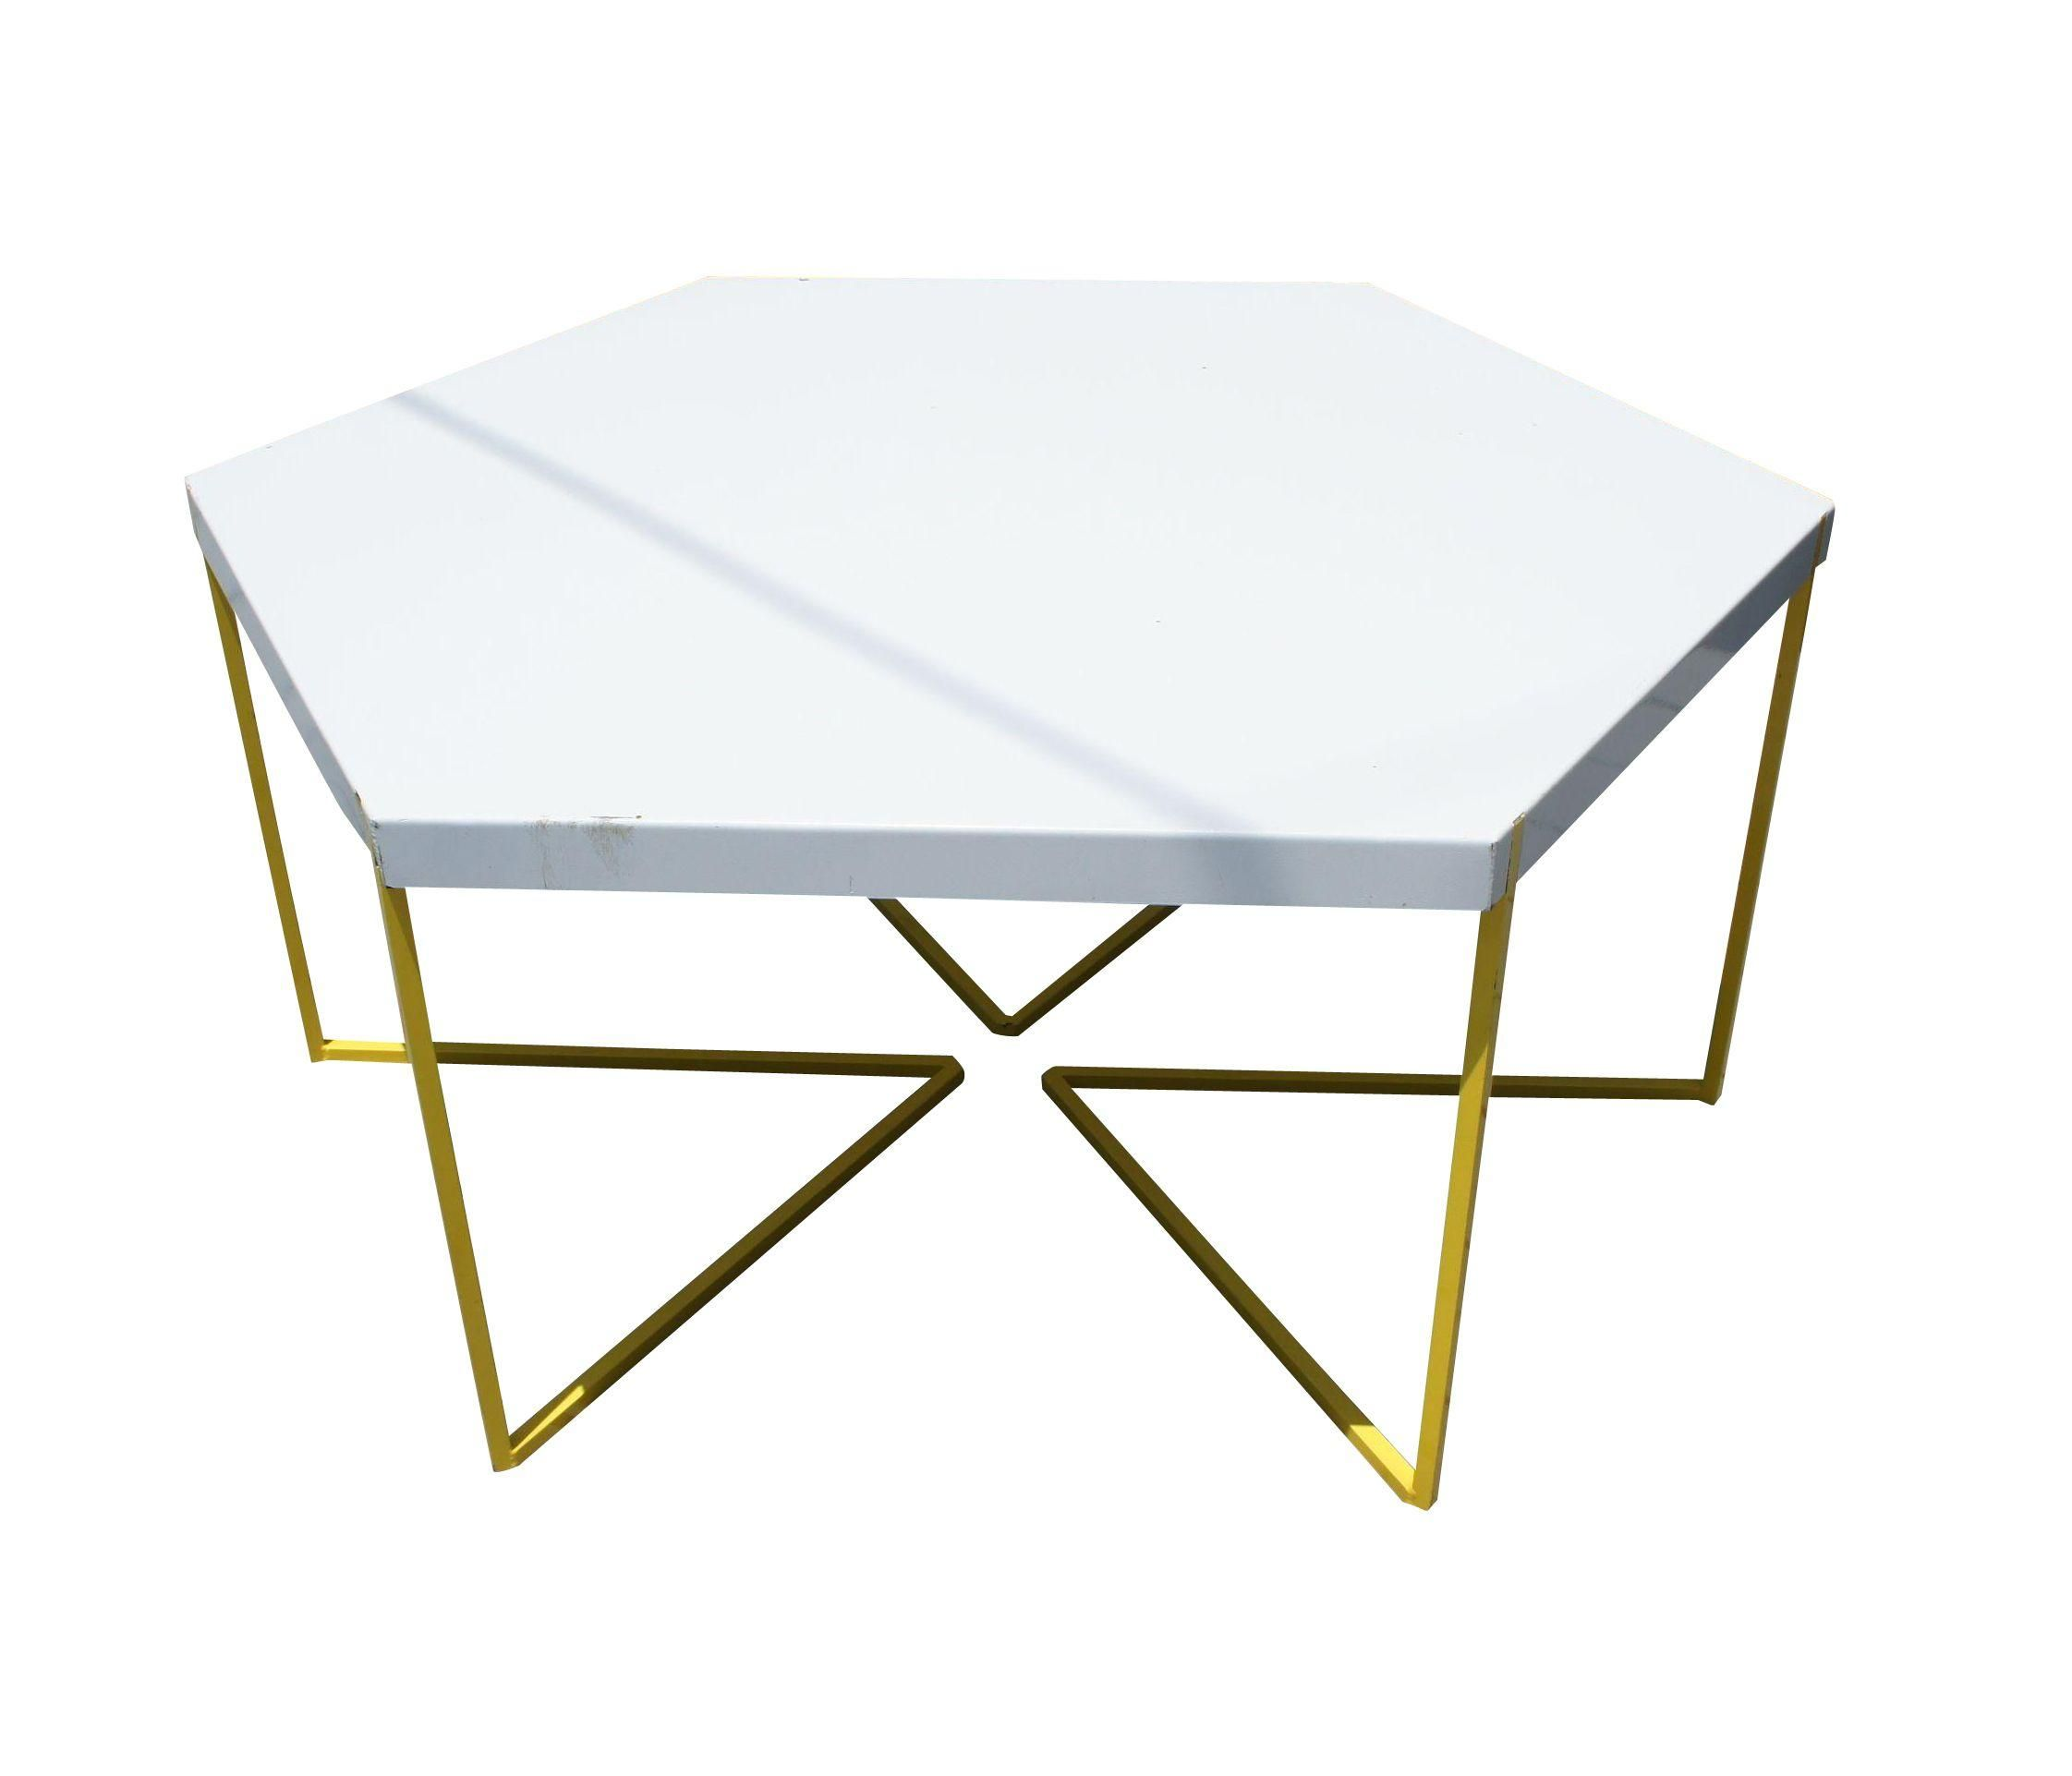 The patio deserves some attention This Modern coffee table will